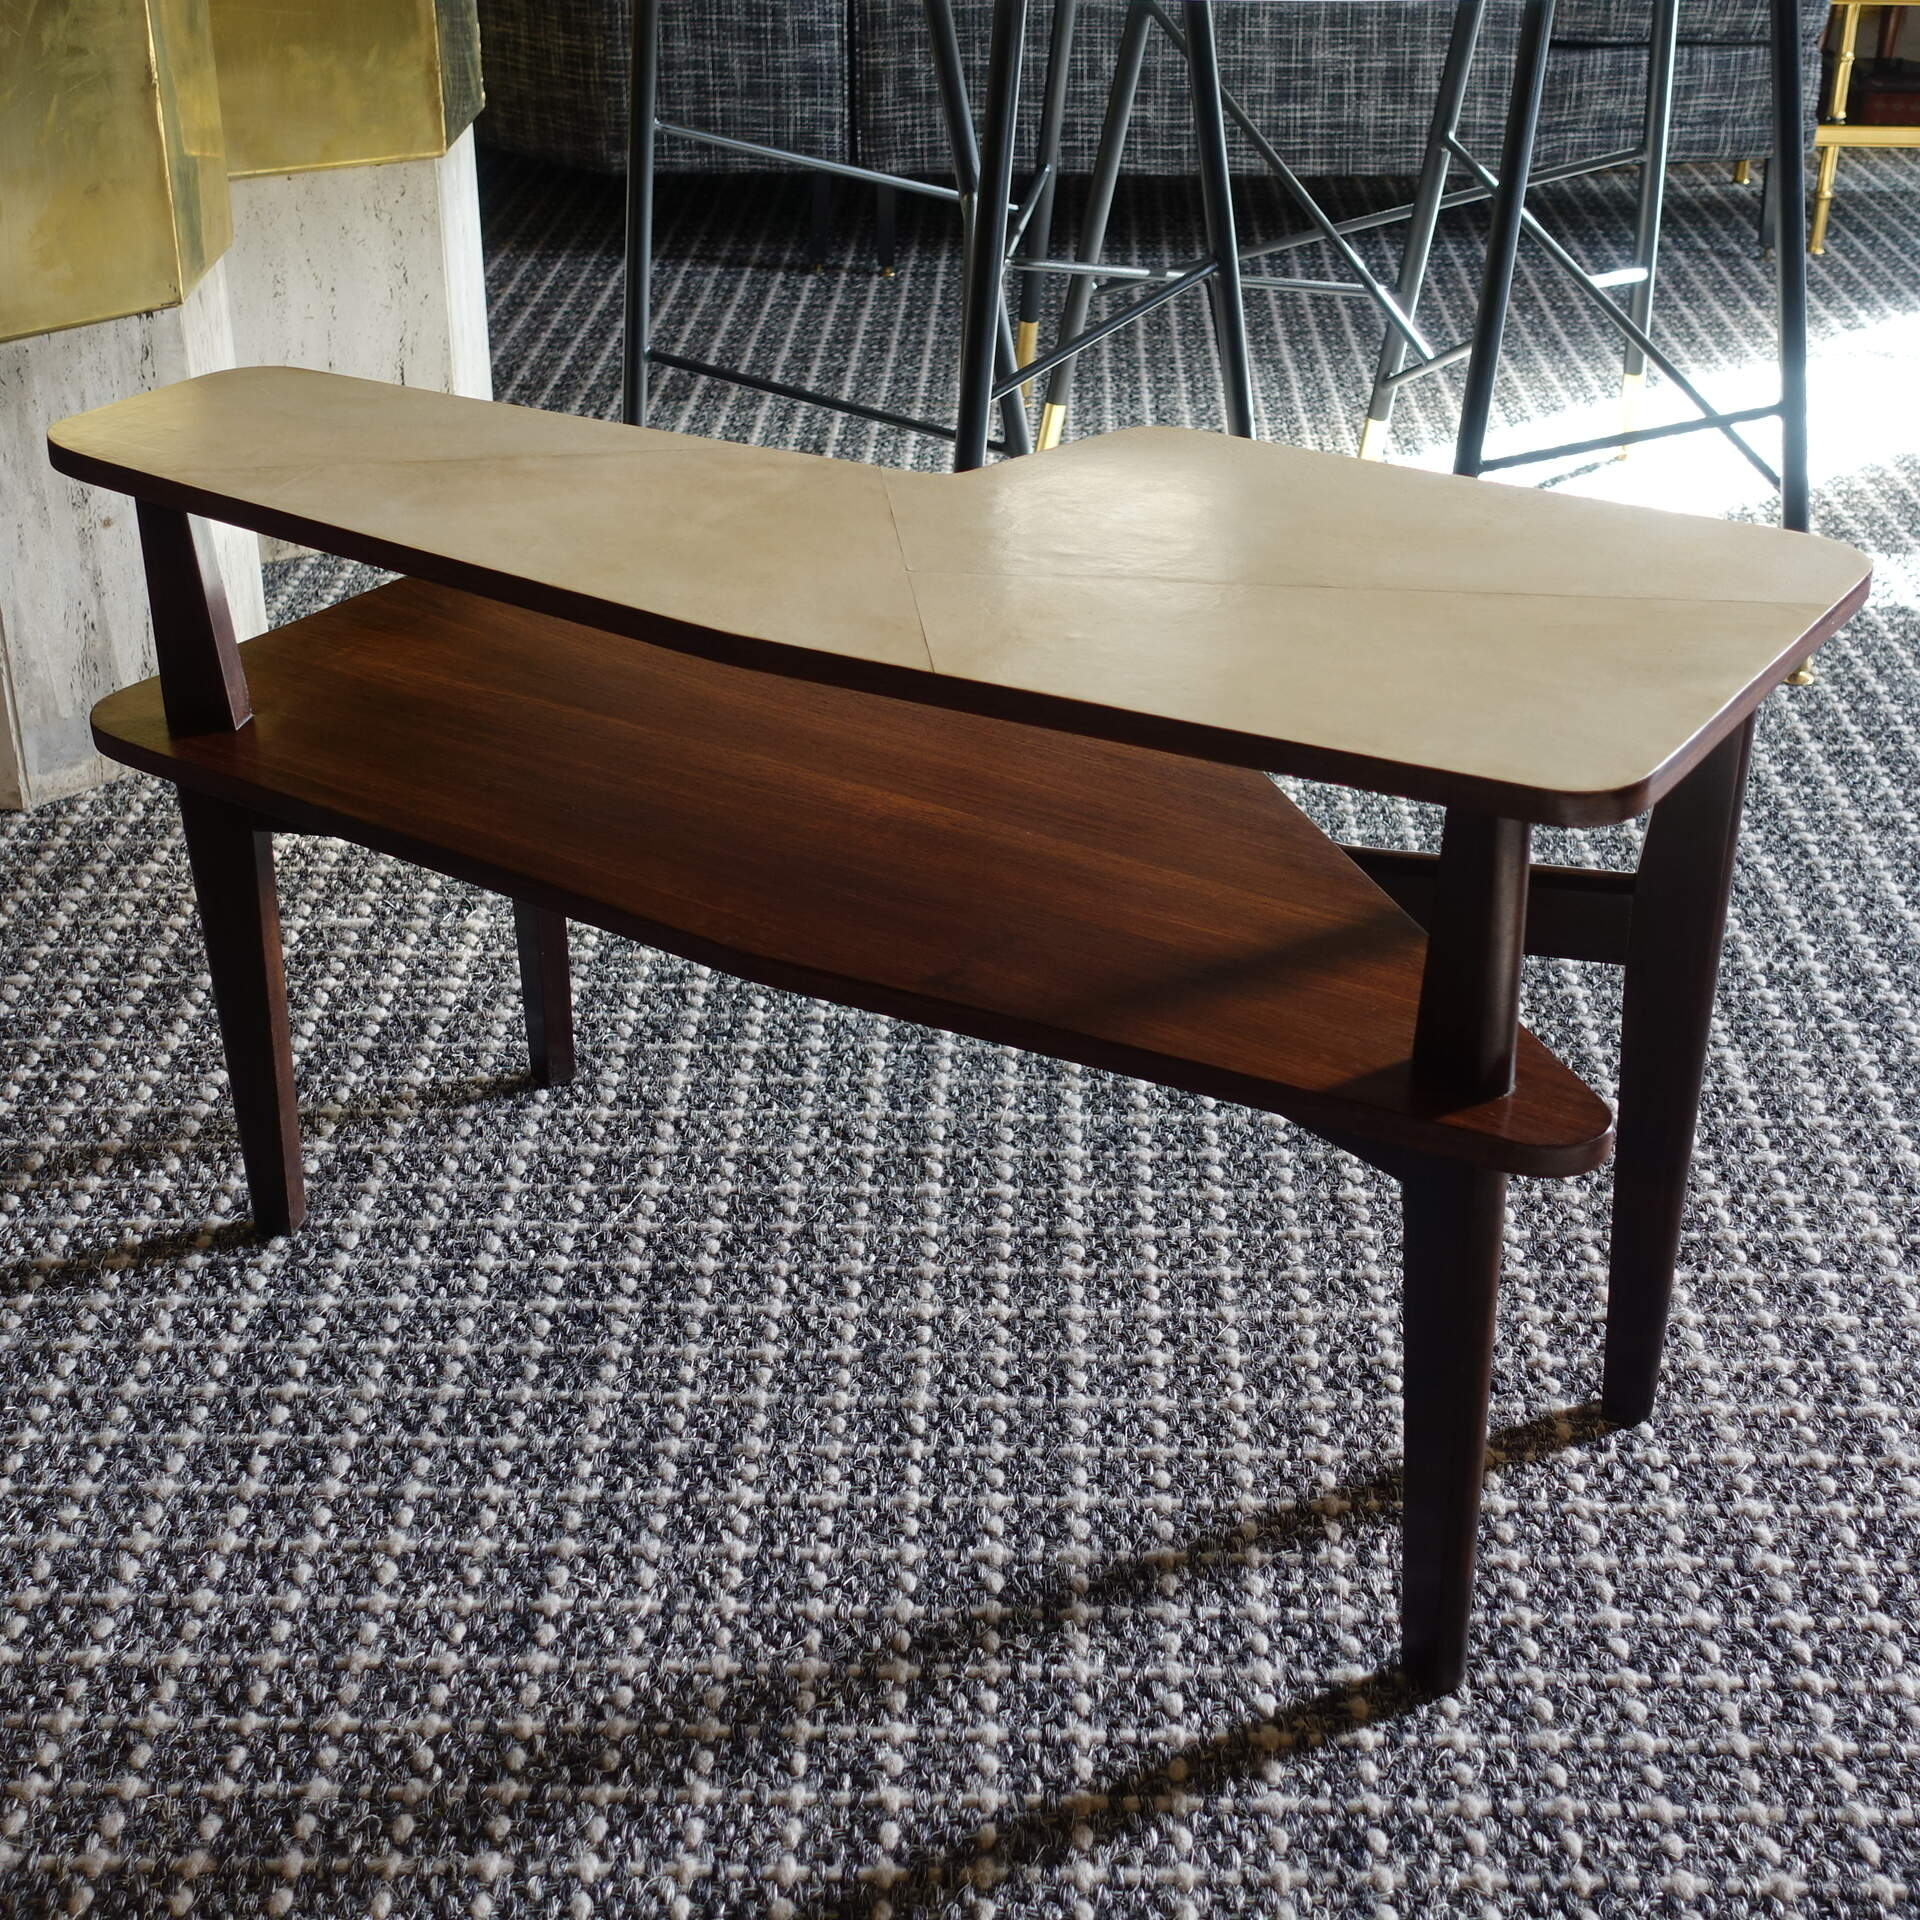 1950s Italian Double Level Side Table in Walnut and Parchment